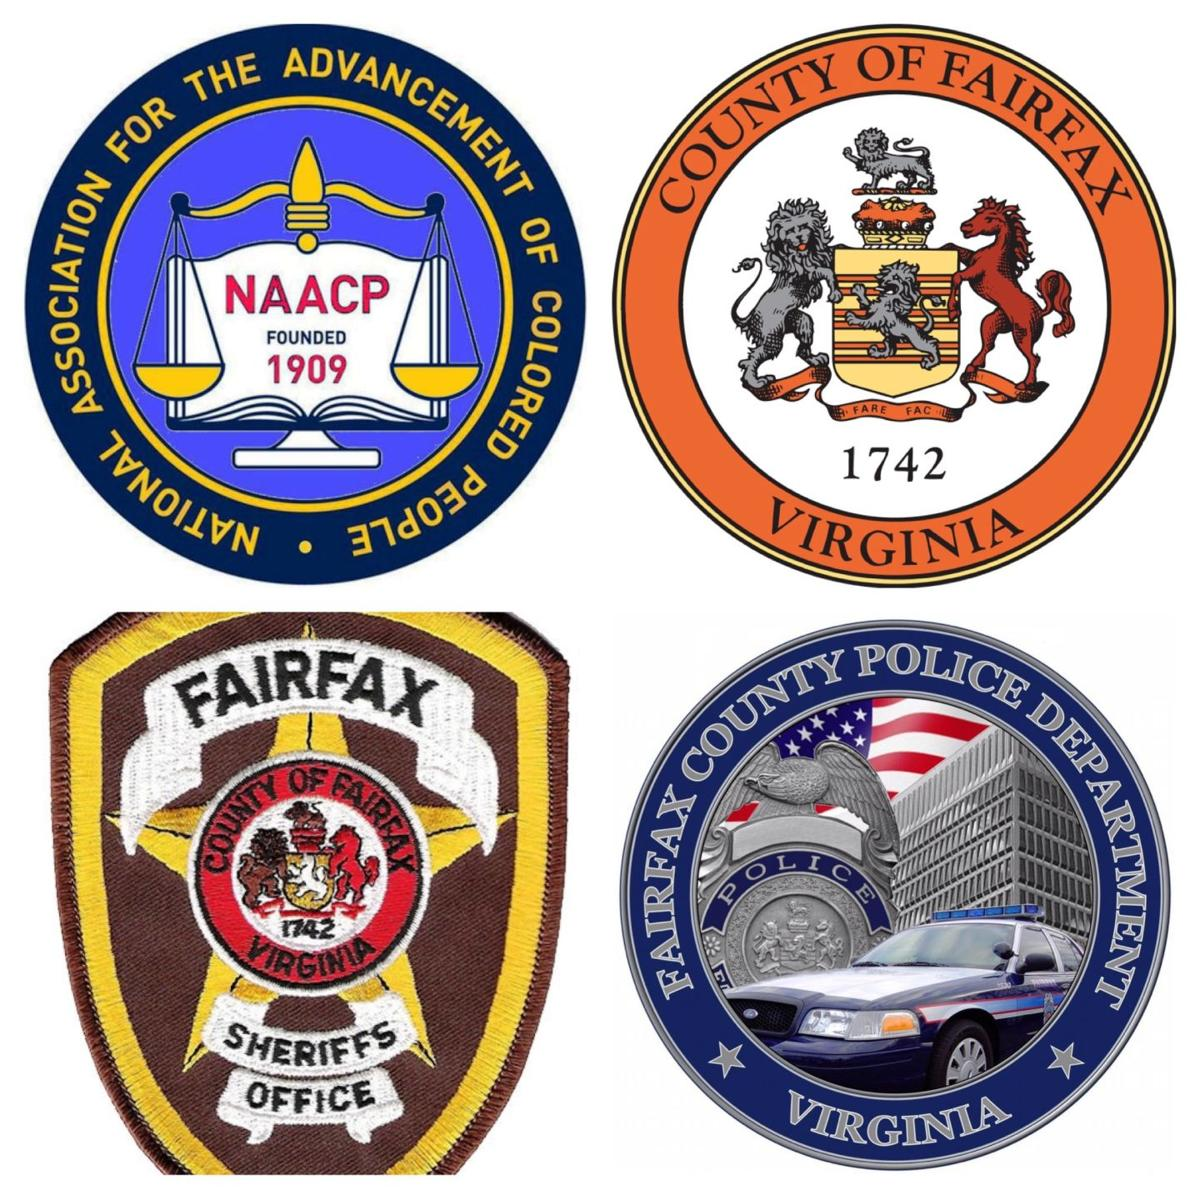 NAACP grades Fairfax County criminal justice system ...